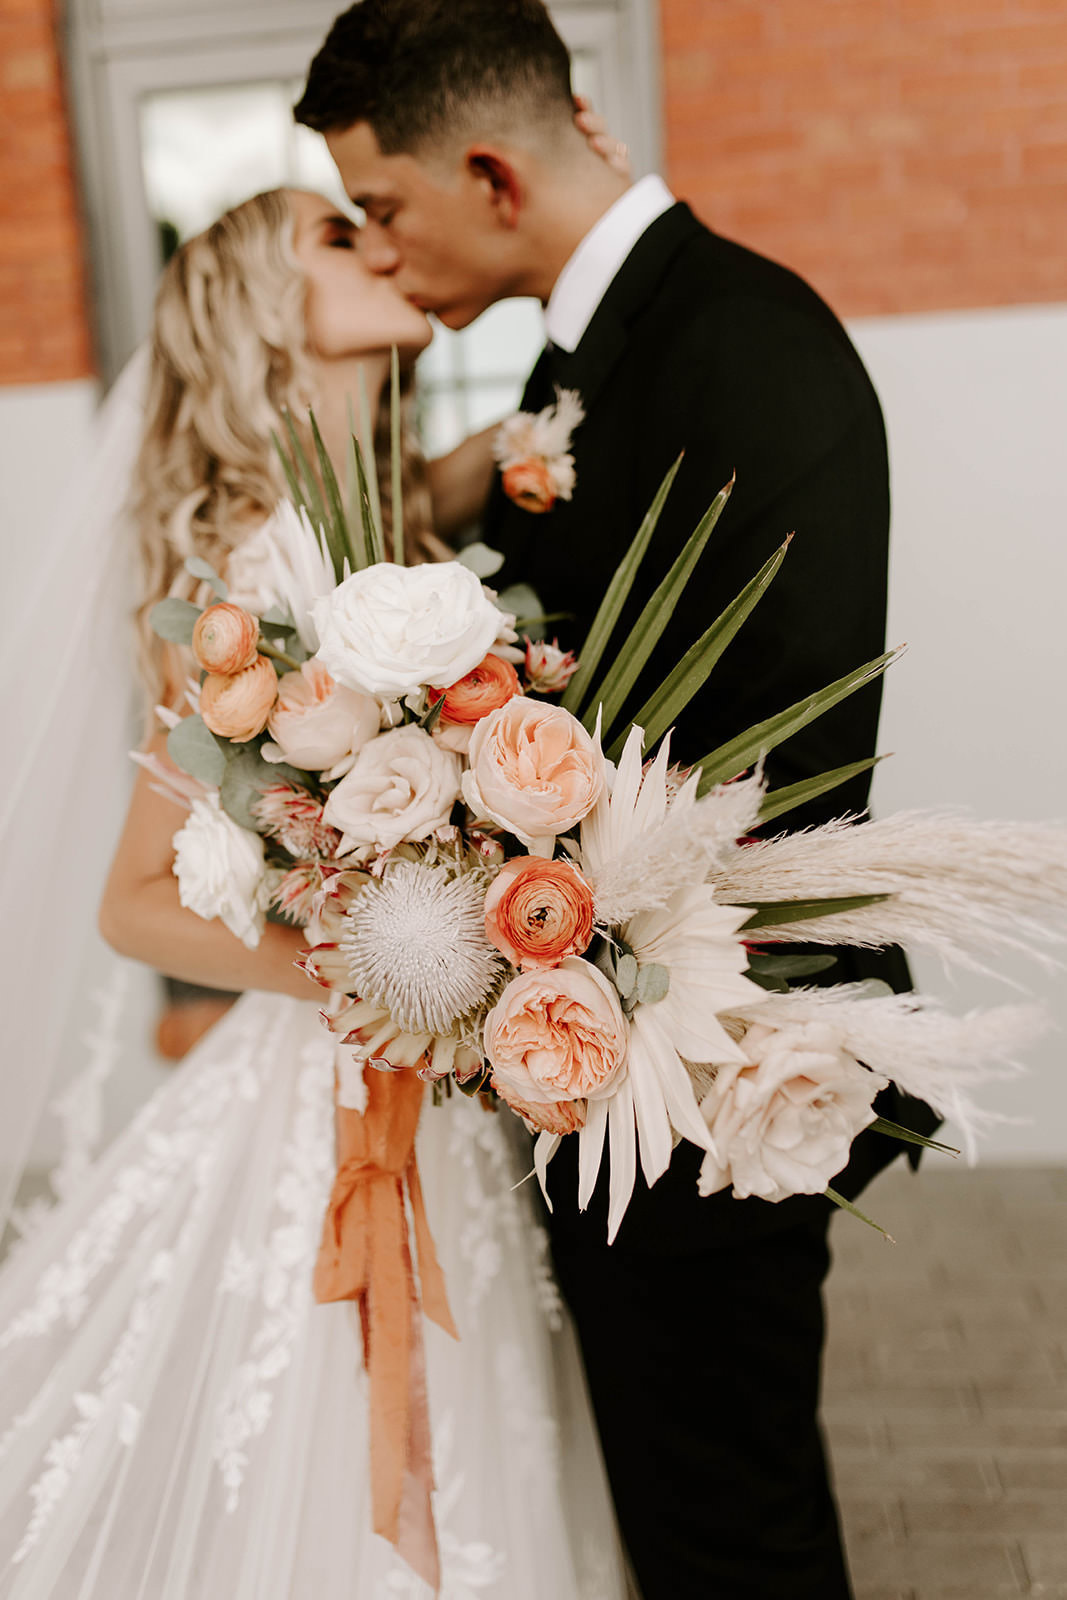 Boho Bride and Groom Intimate Creative Wedding Portrait, Bride Holding Whimsical Palm Tree Leaves, White Feathers, Burnt Orange and Blush Pink Roses, King Protea, Eucalyptus Leaves Floral Bouquet   Tampa Bay Wedding Planner Coastal Coordinating